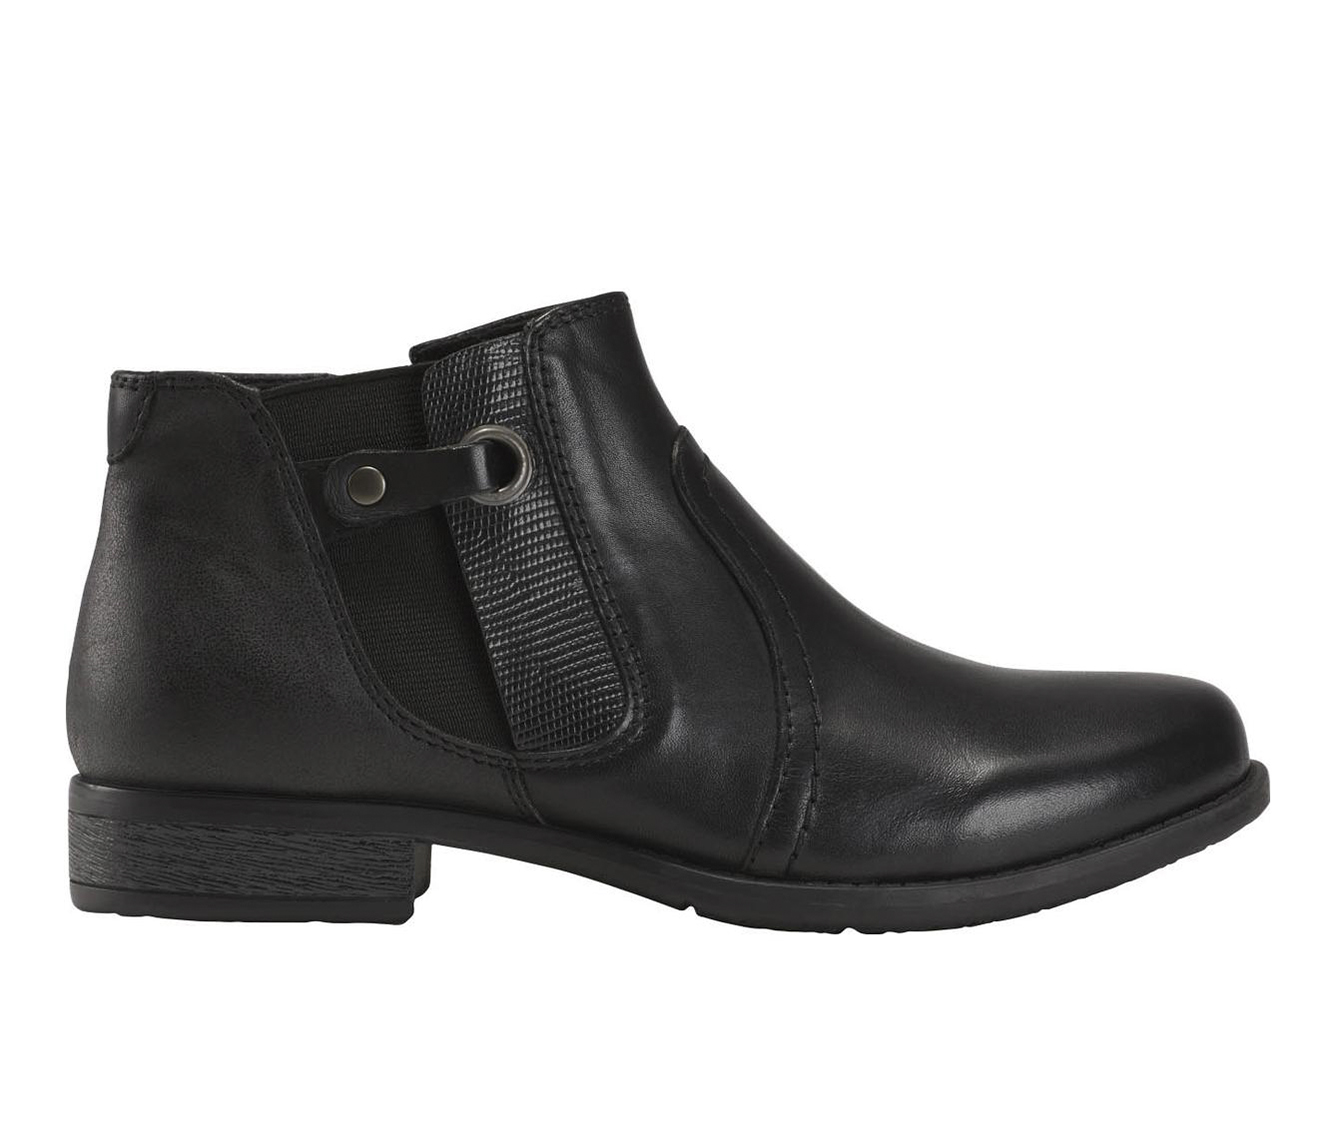 Earth Origins Navigate Norma Women's Boot (Black Leather)